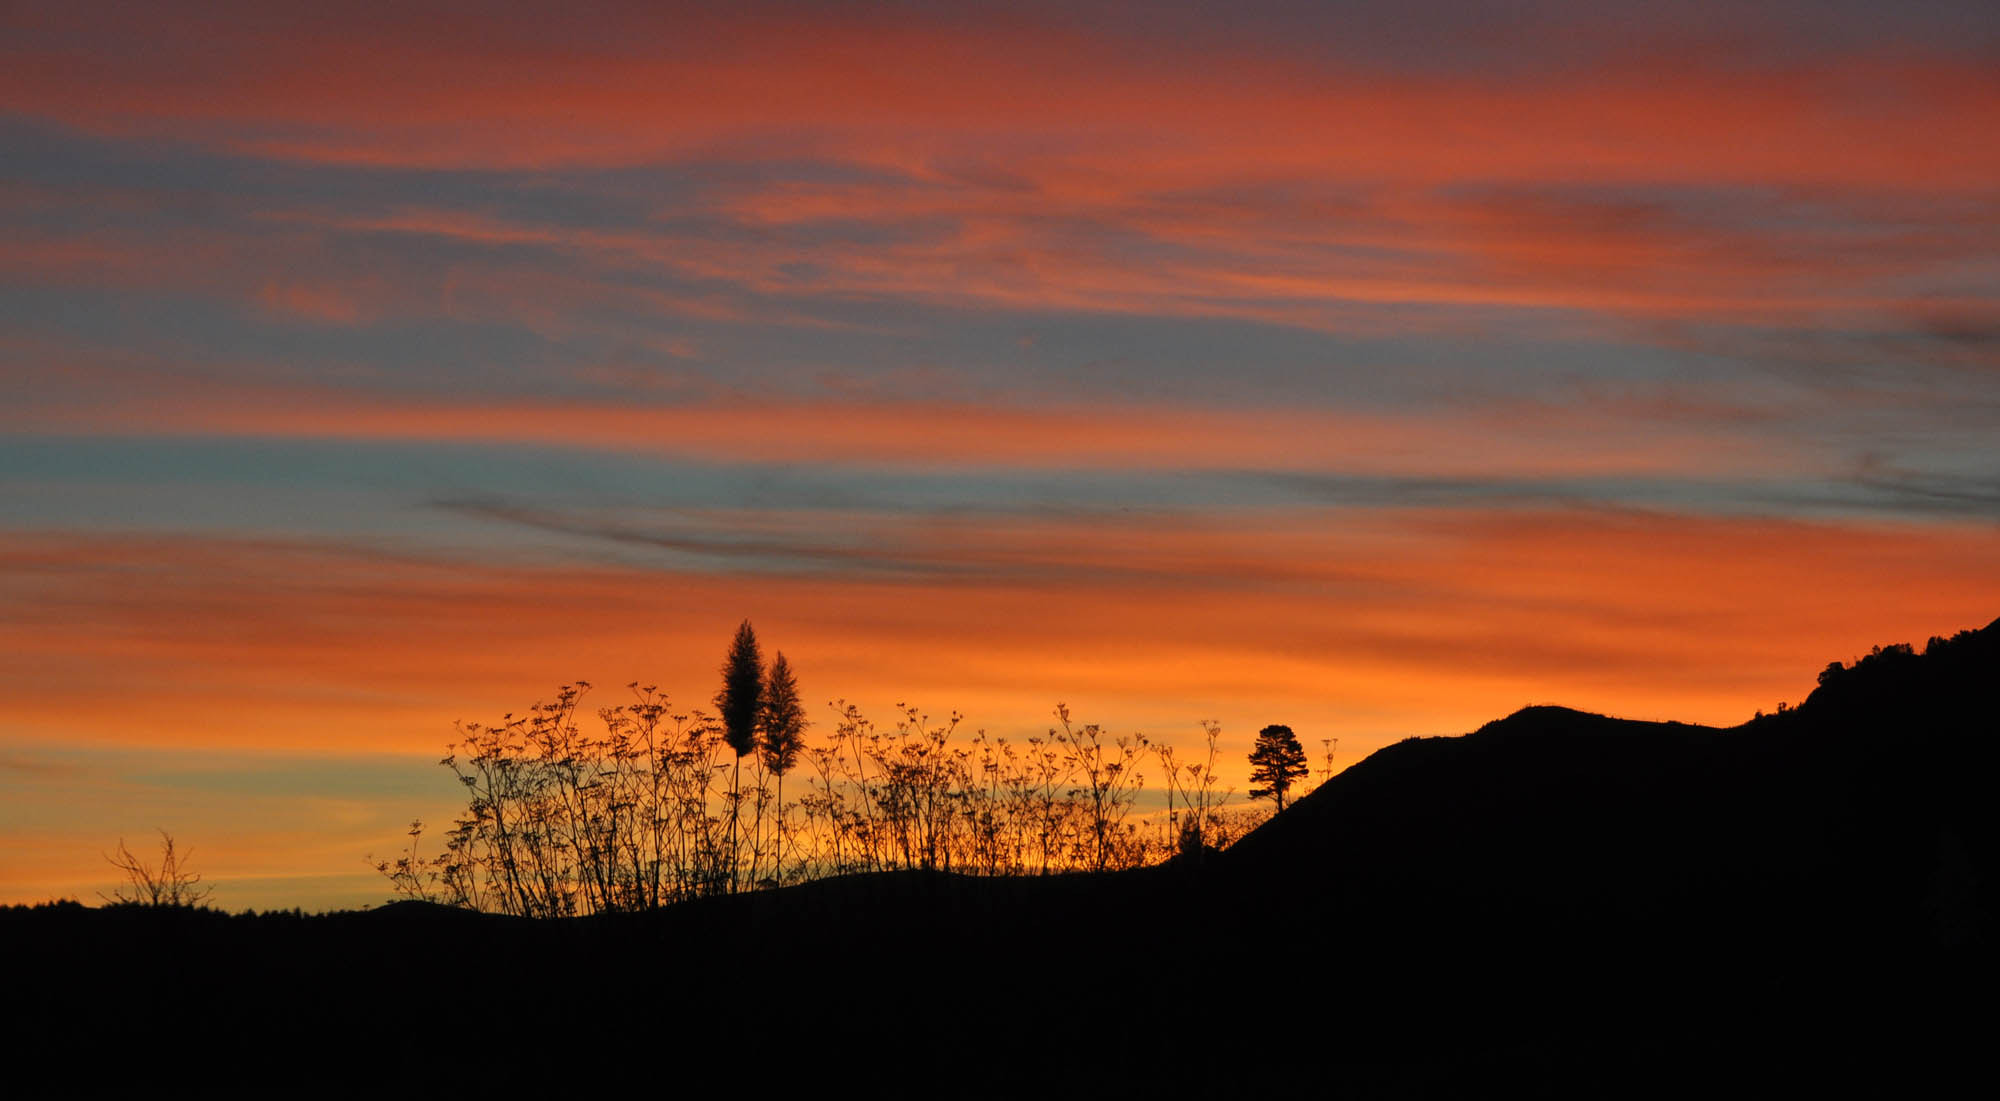 Photograph New Zealand sunset 2 by Heather Thorsen on 500px